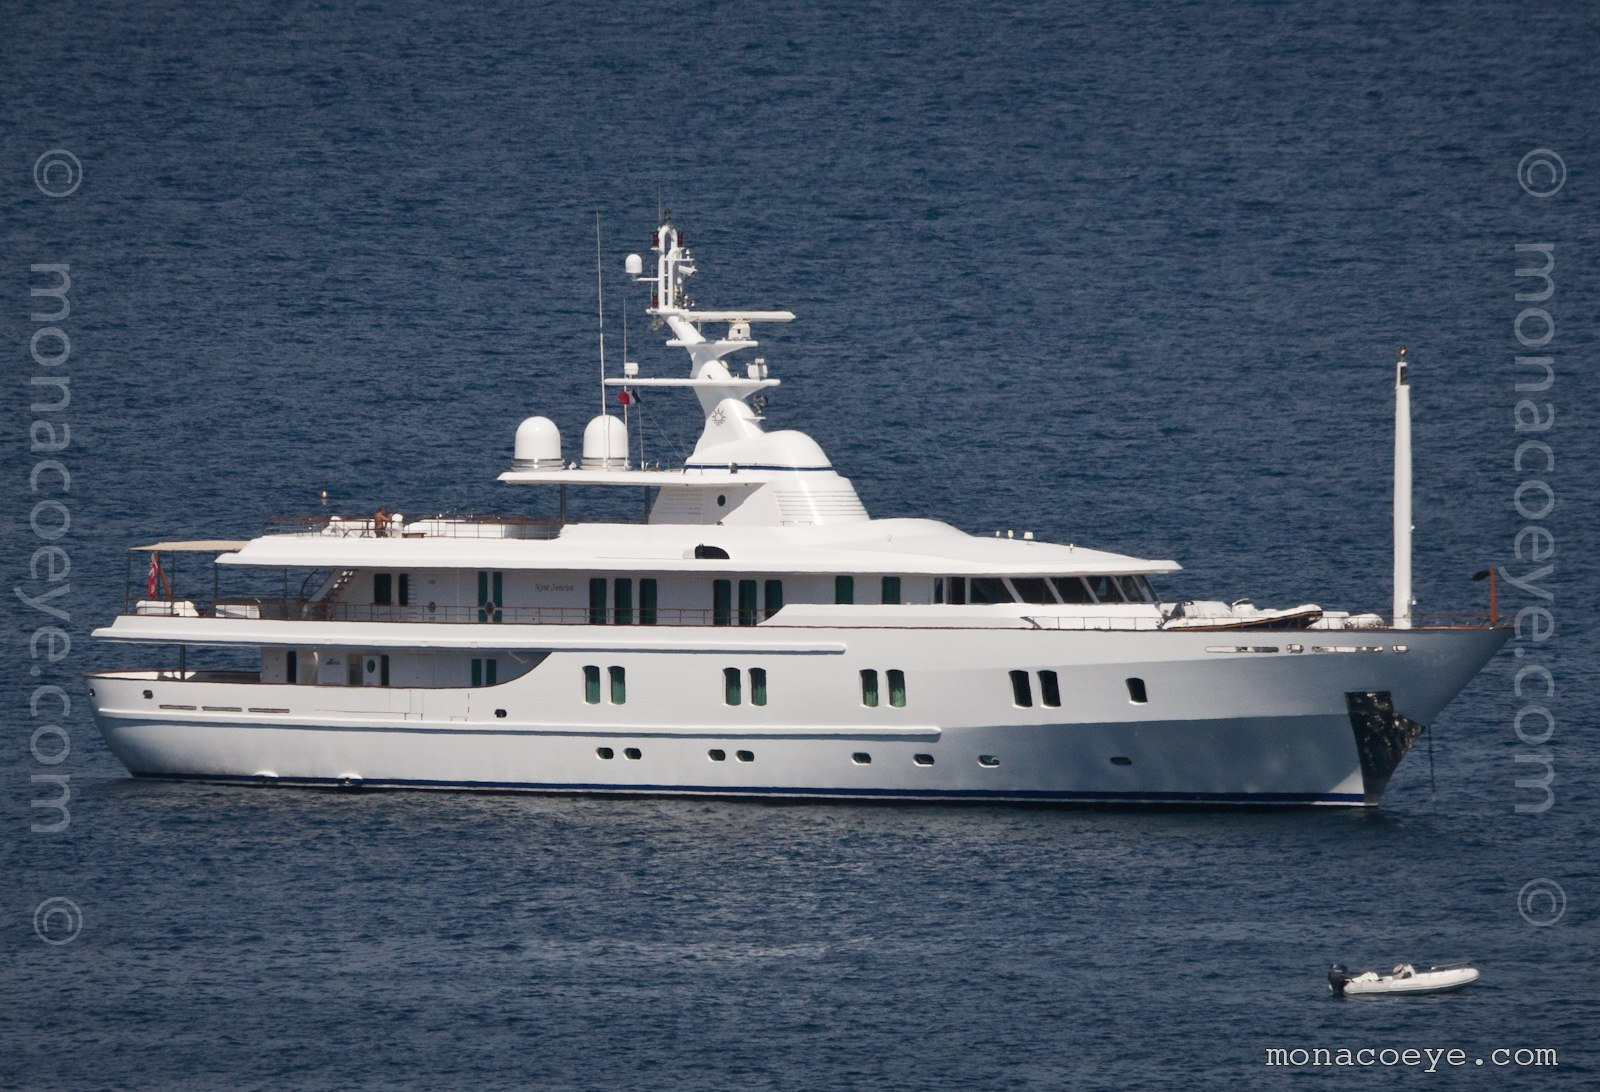 New Sunrise yacht. Built by CRN #113, 2000, 61 metres, naval architecture by Studio Scanu